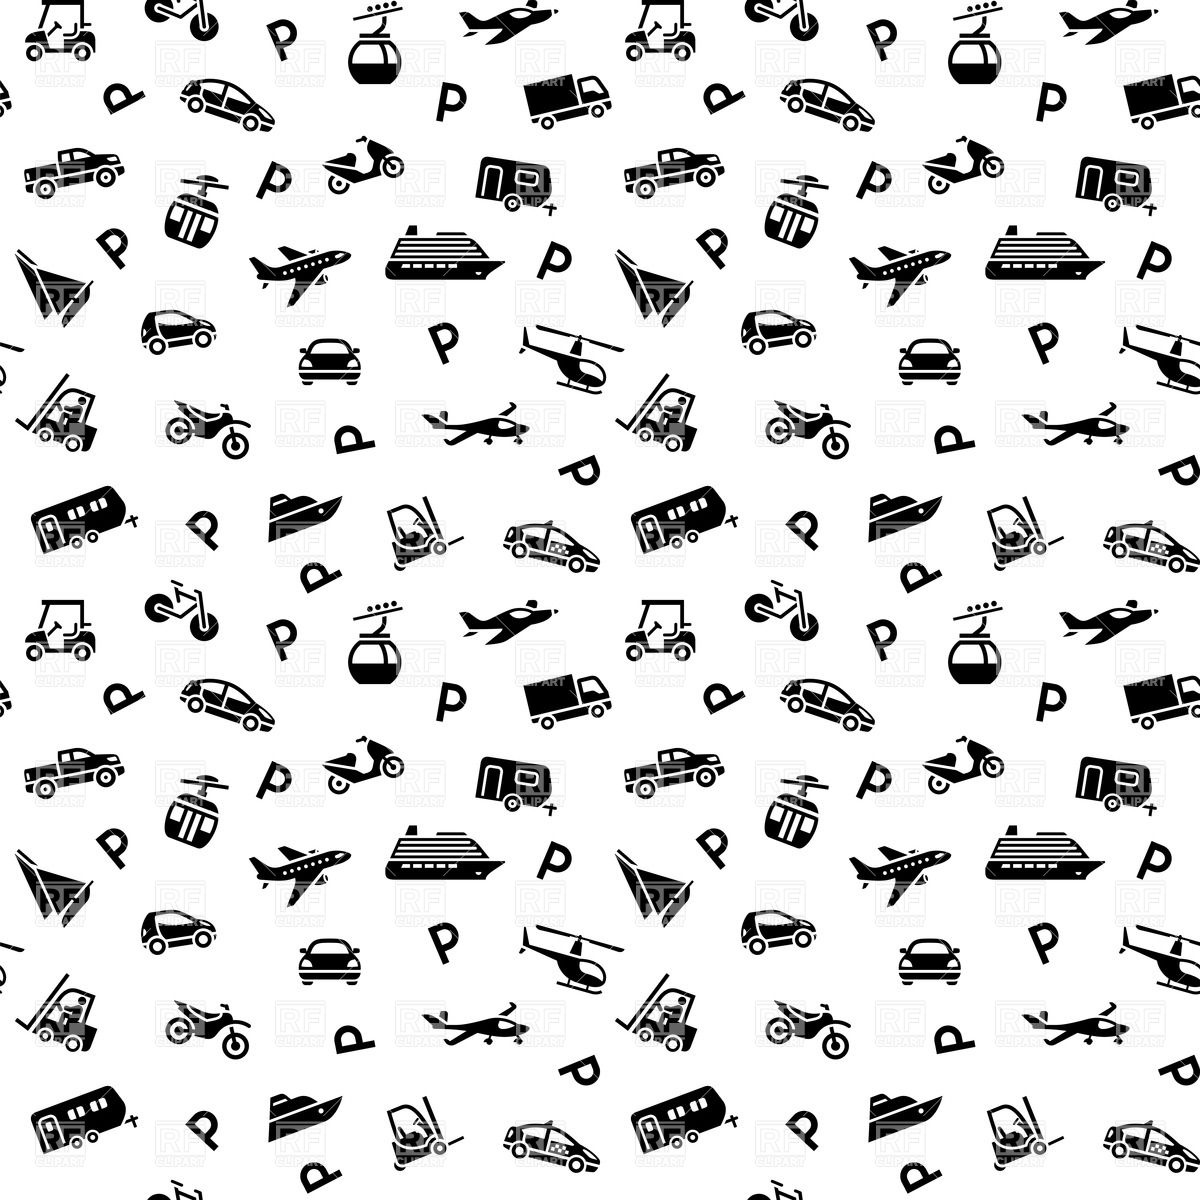 Black & White clipart transport Transport collection pattern clipart white